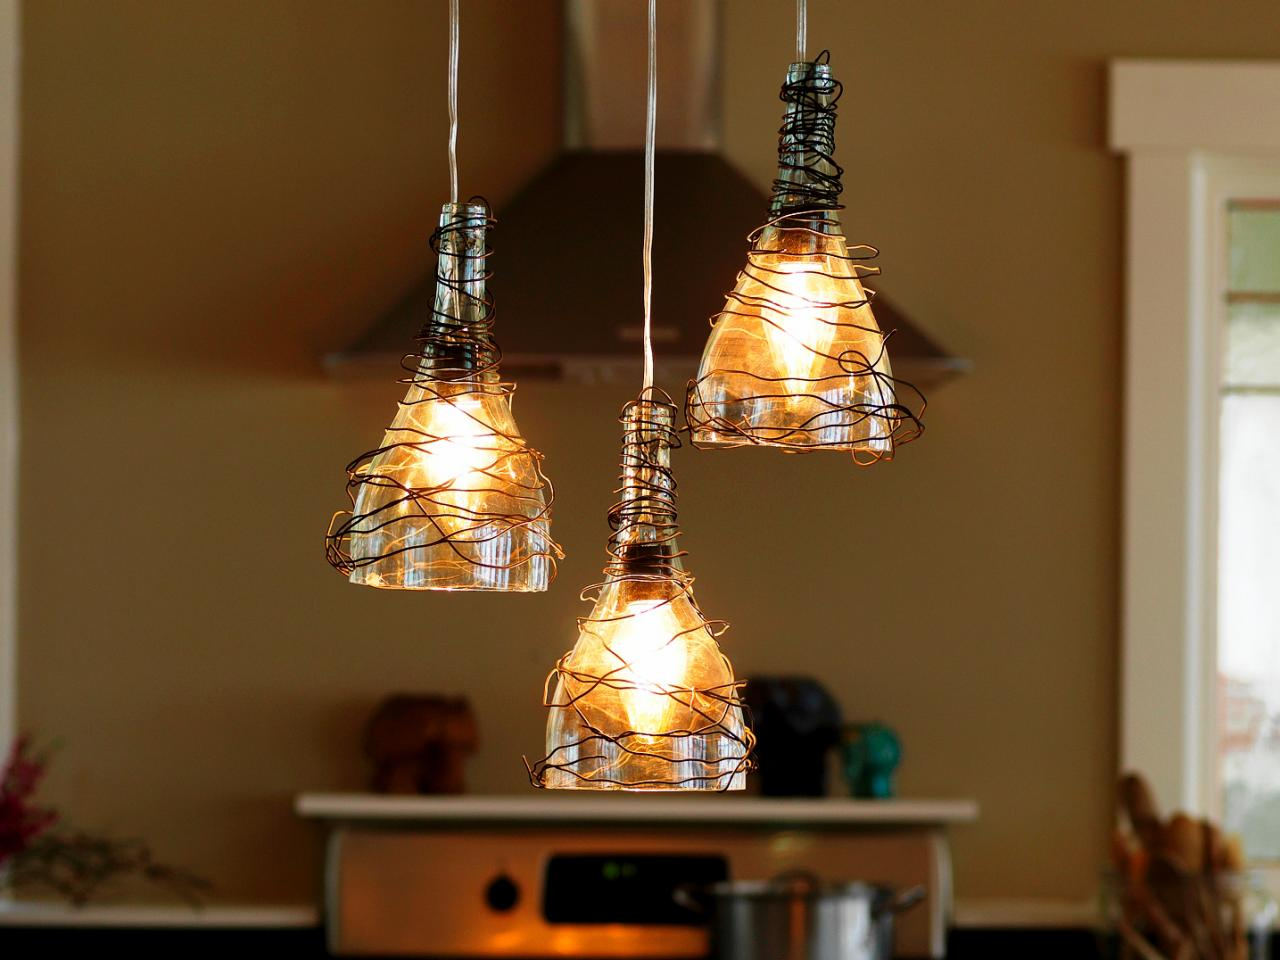 How to Make Wine Bottle Pendant Lights